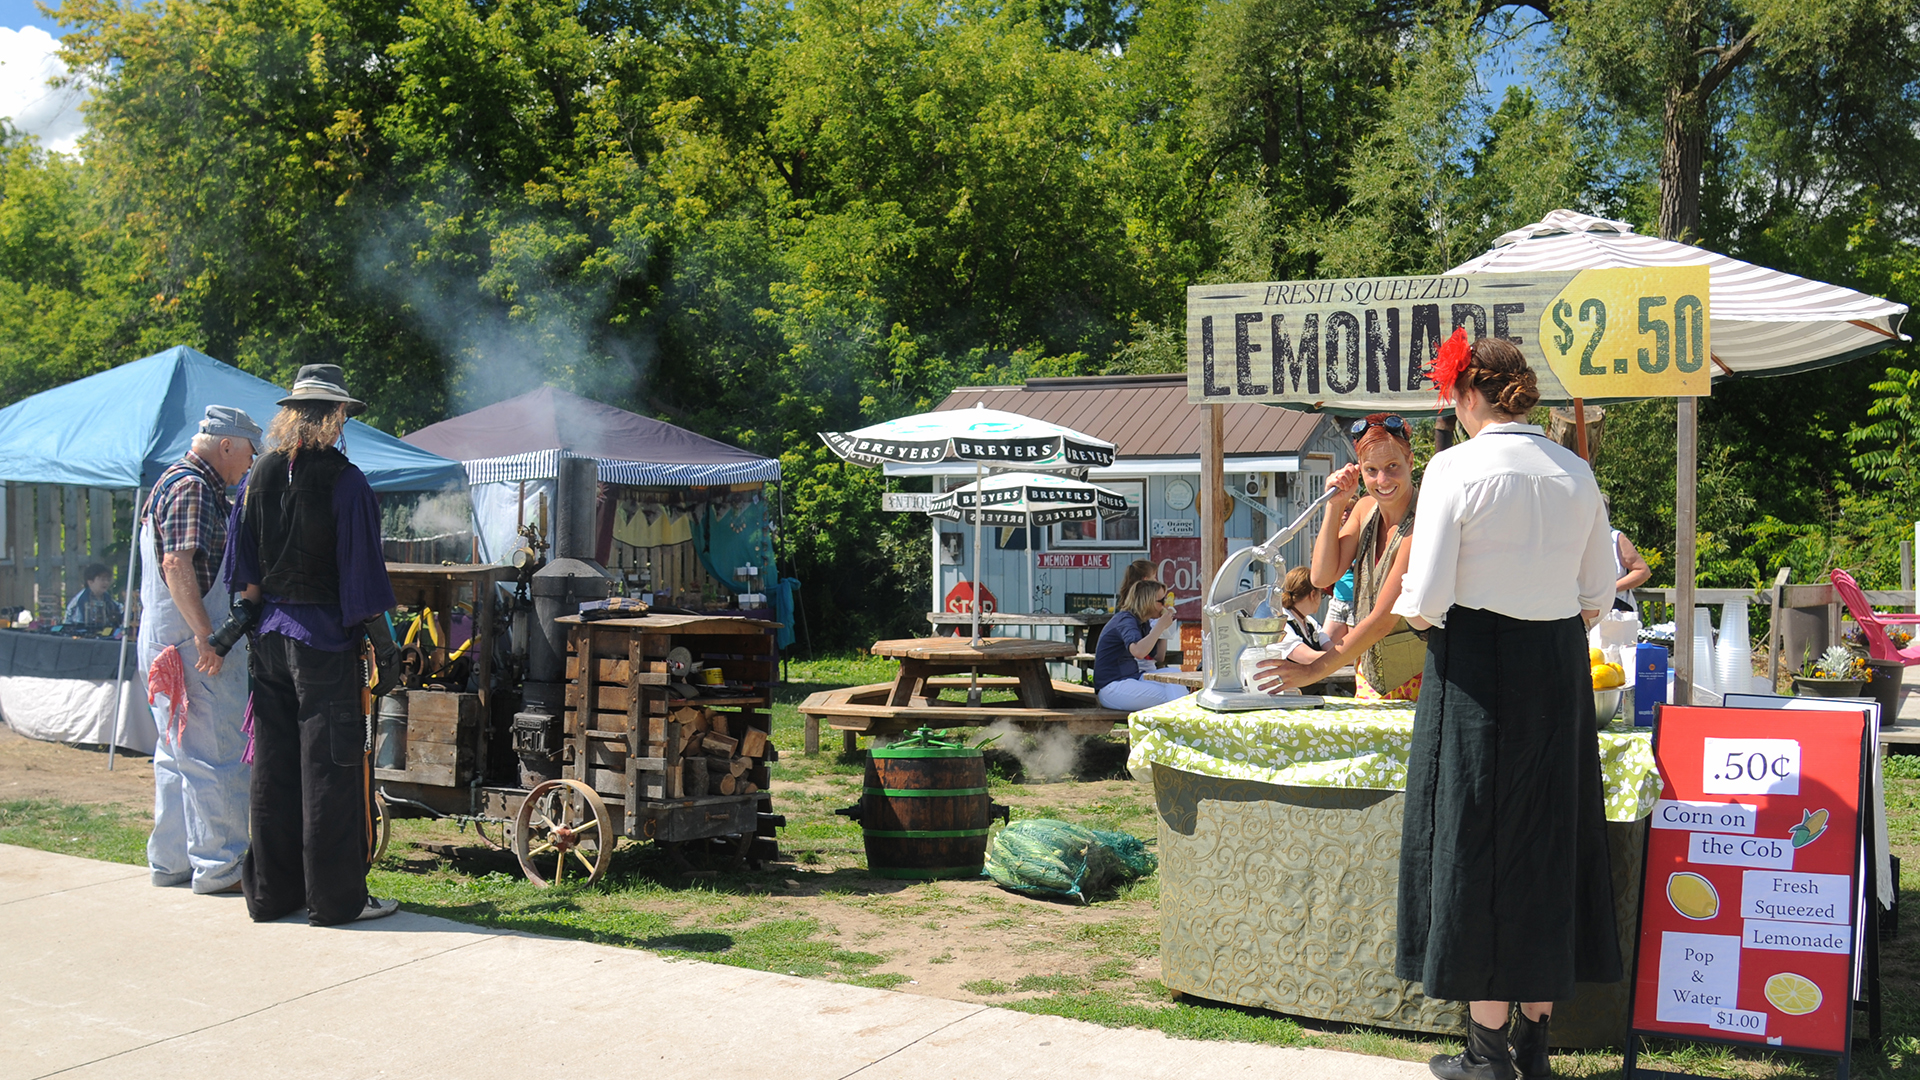 coldwater festival - August Events To Look Forward To